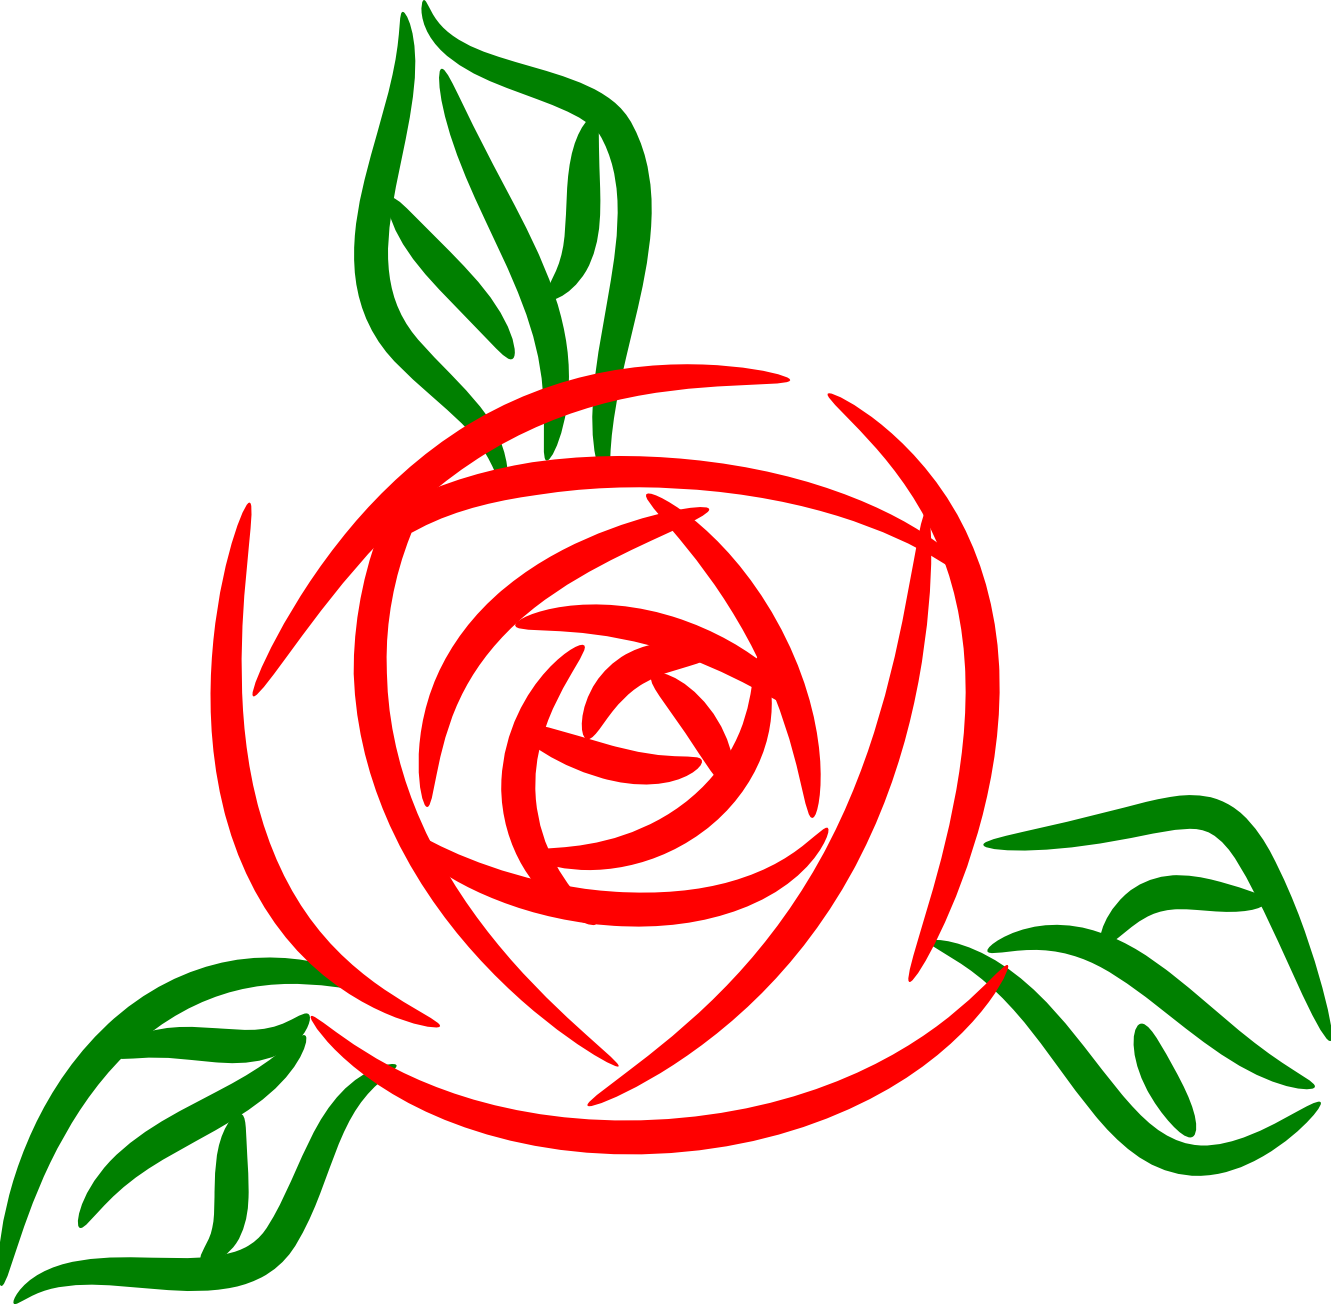 Cabbage Rose clipart #4, Download drawings